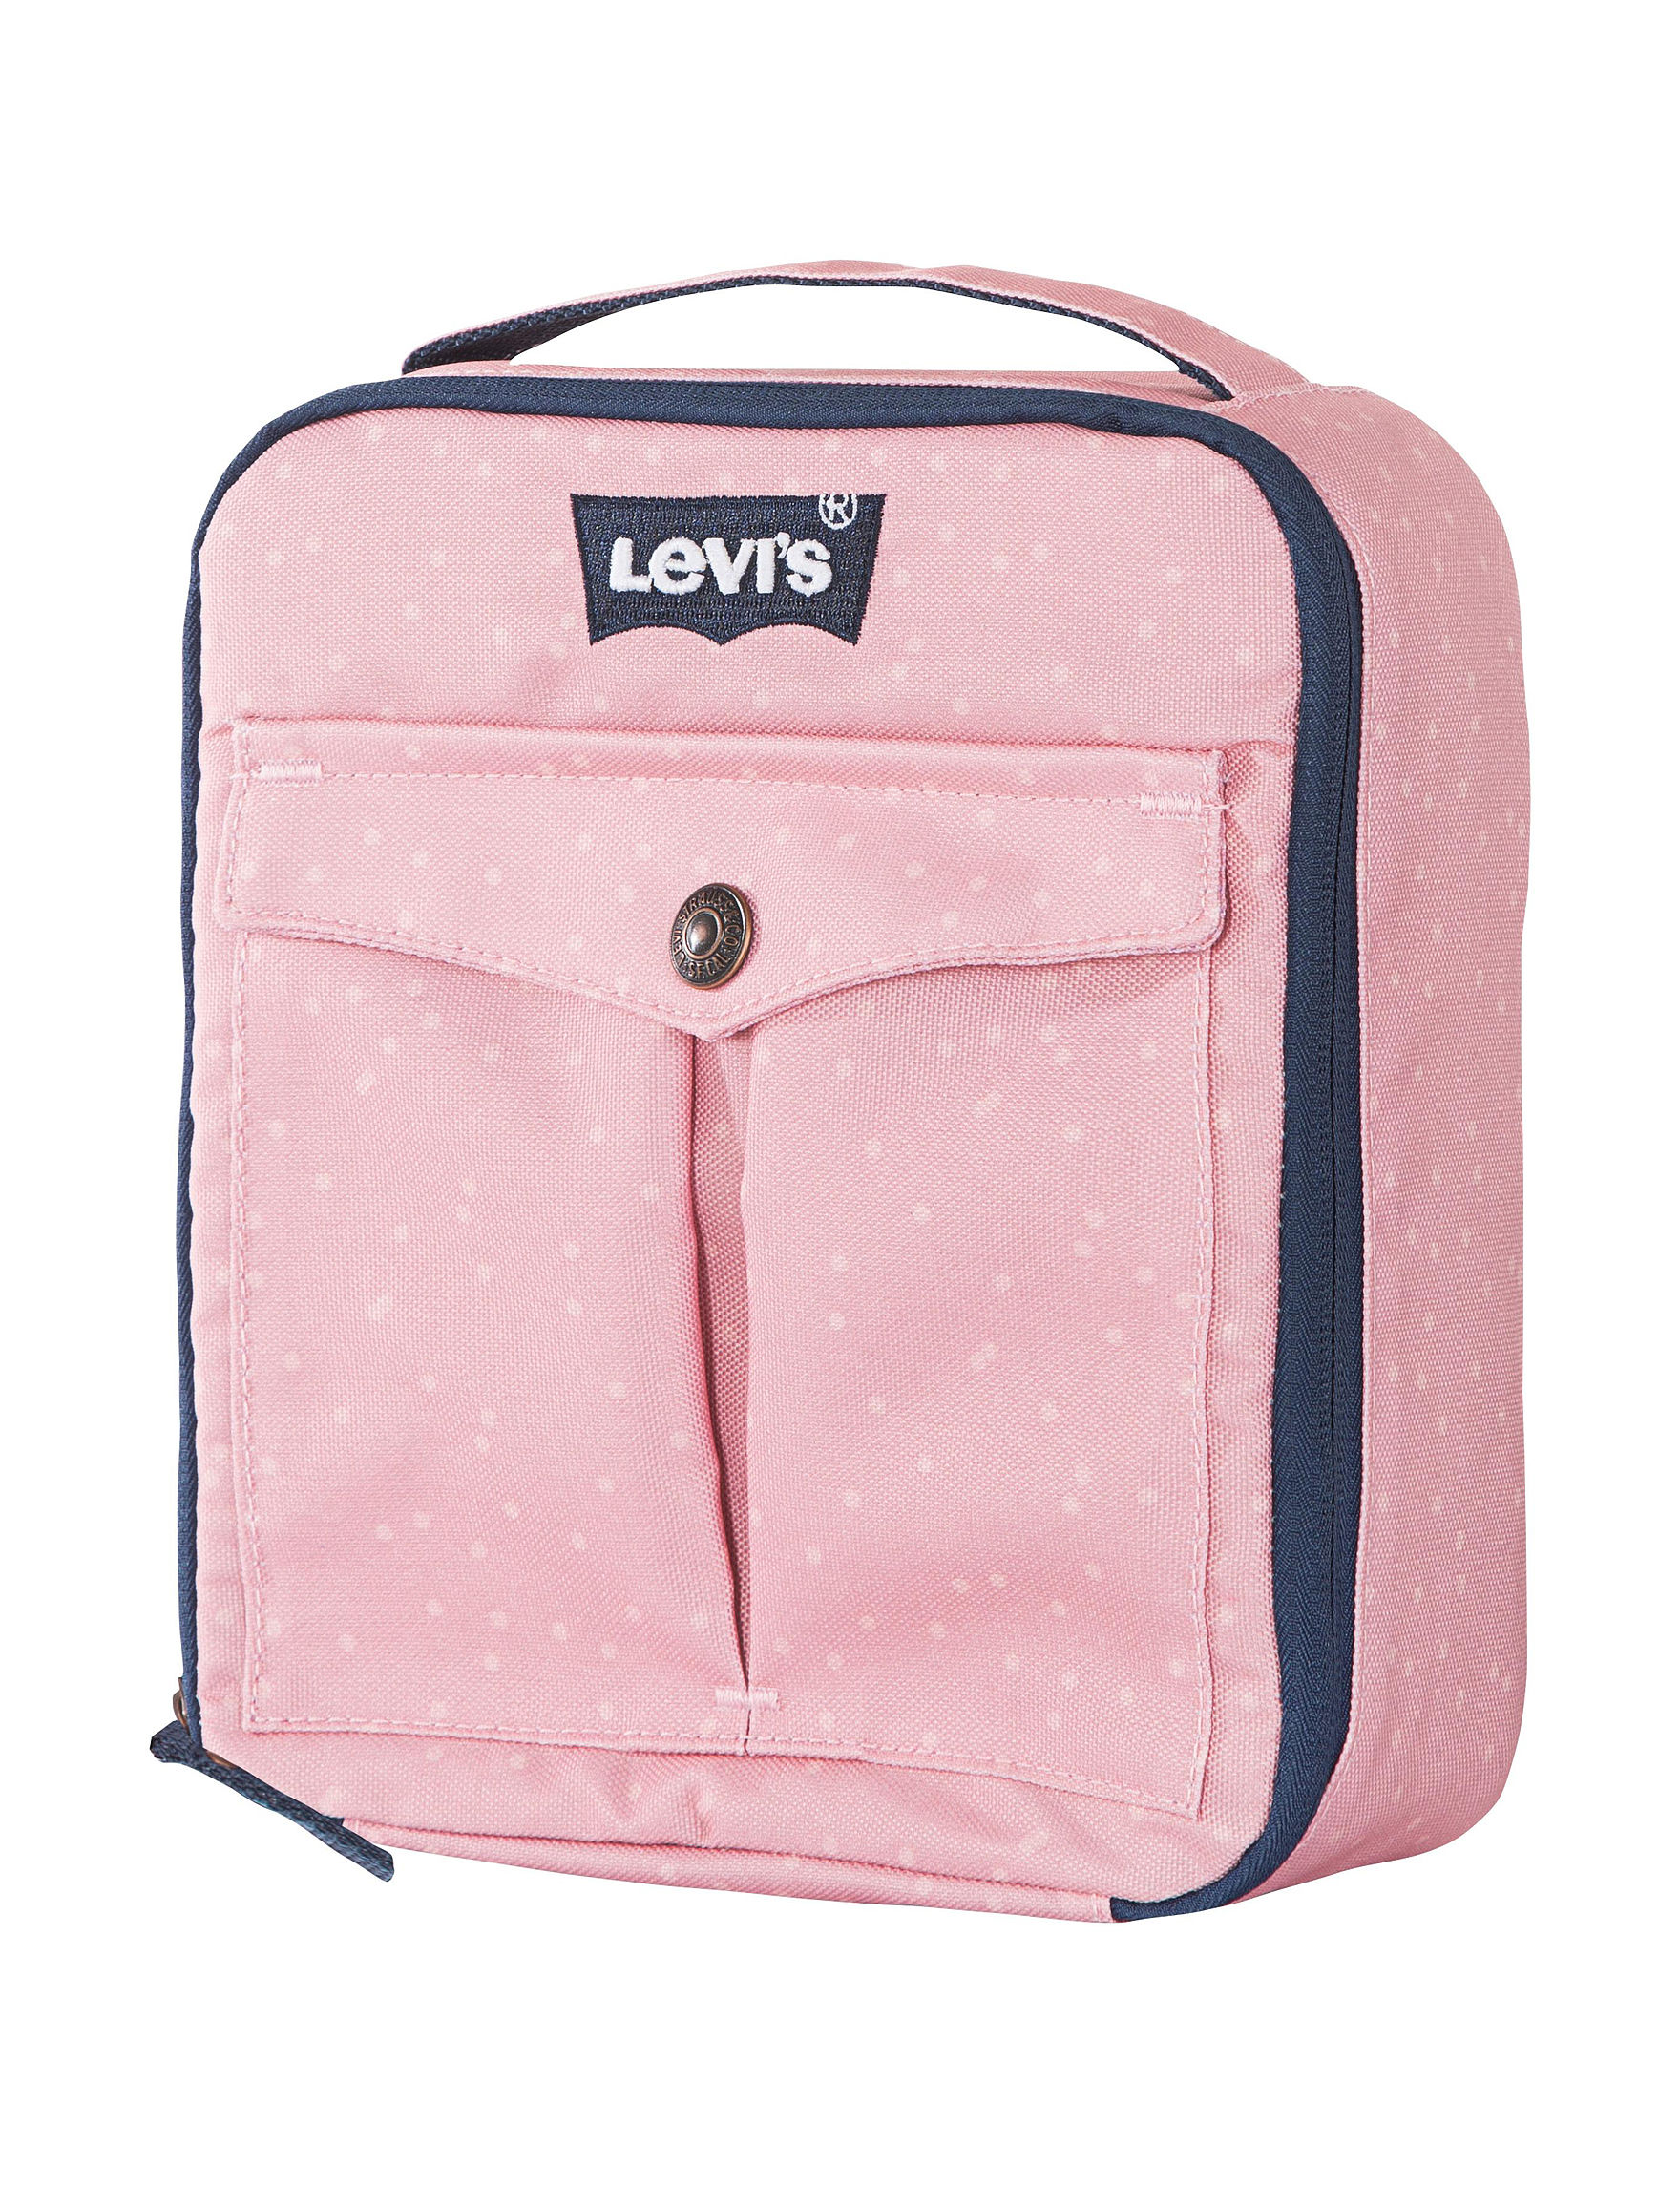 Levi's Blush Lunch Boxes & Bags Bookbags & Backpacks